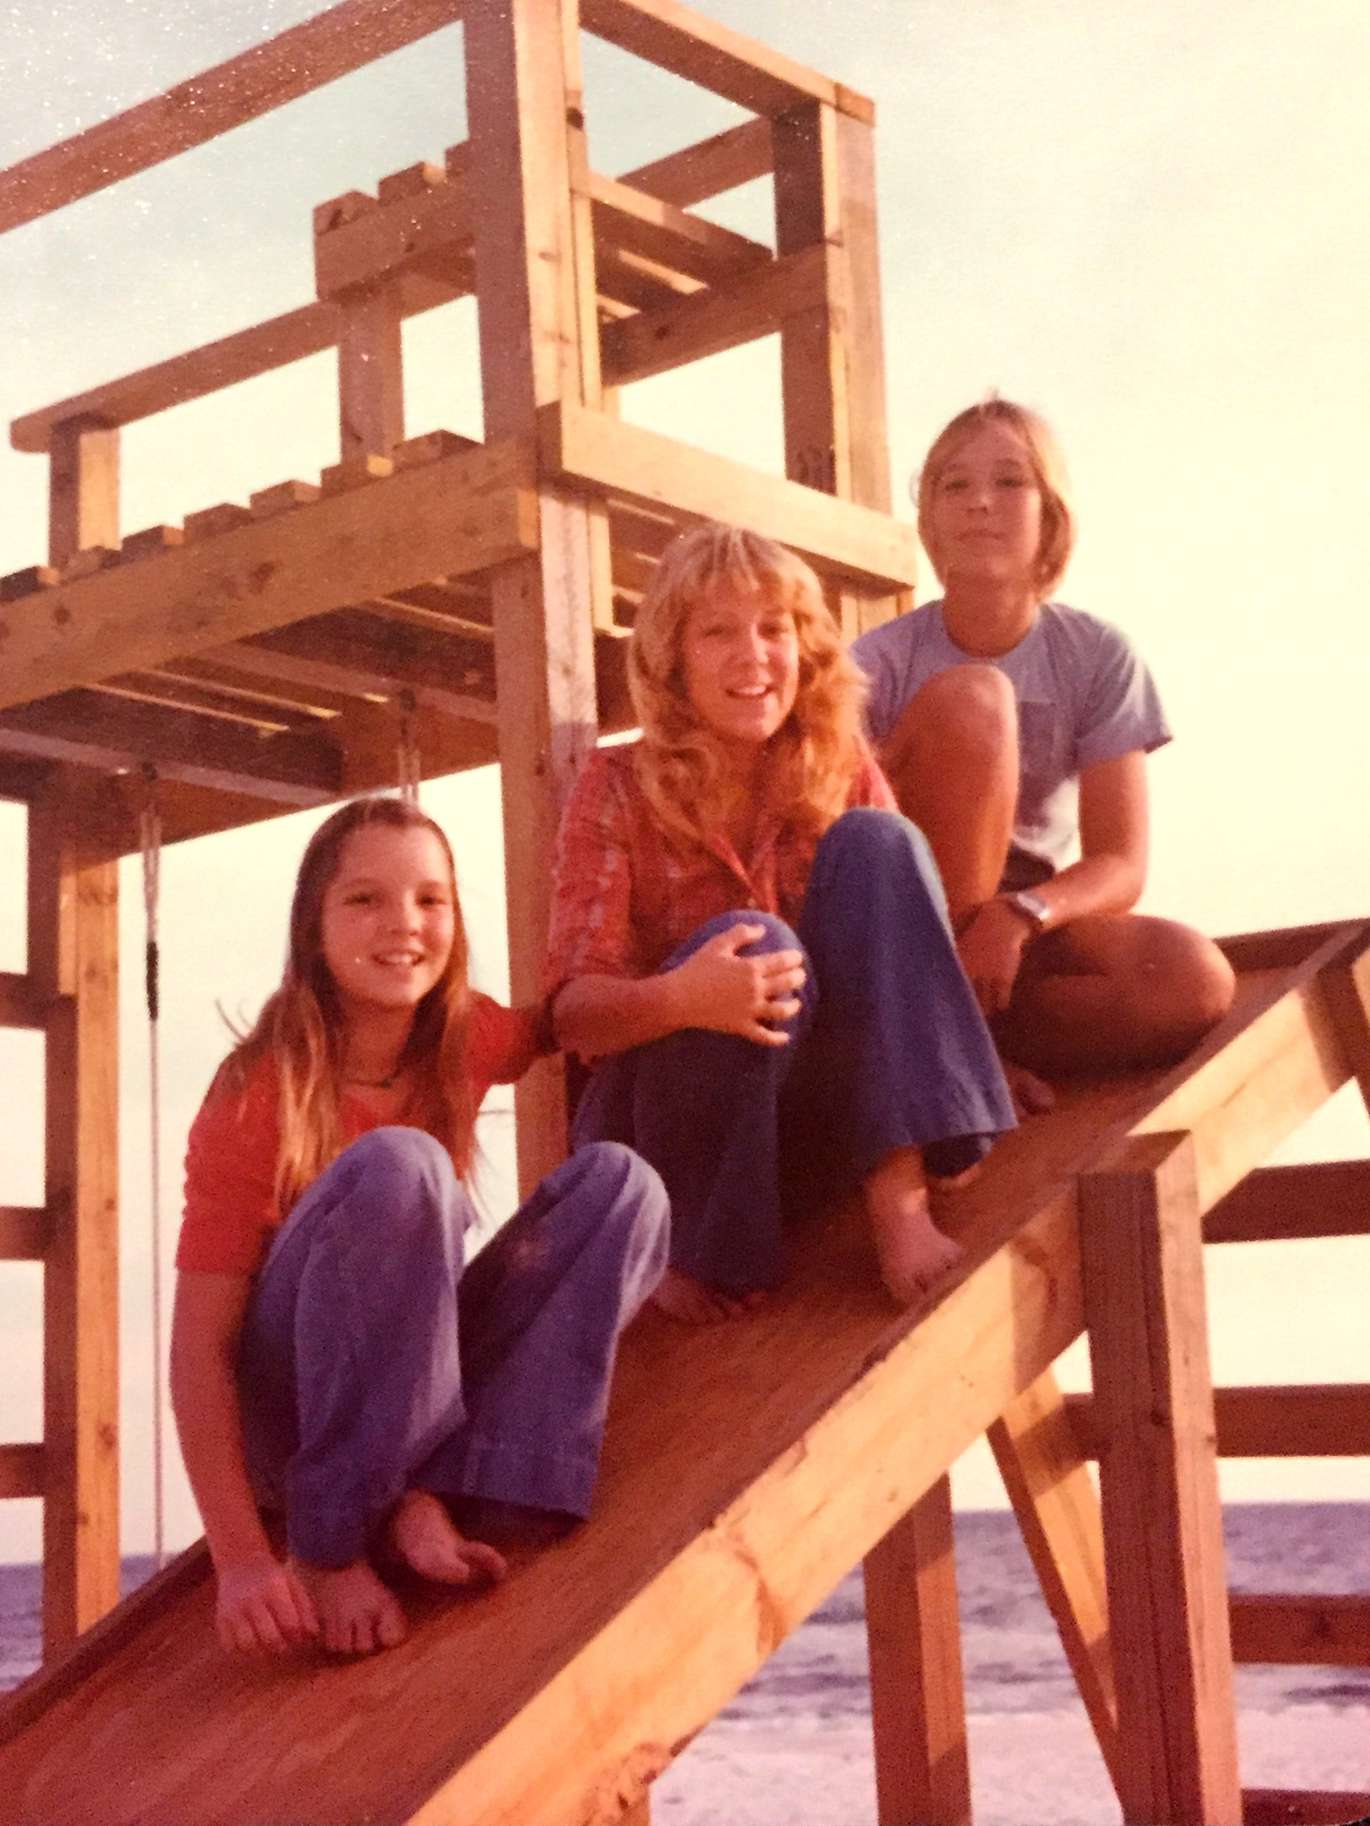 From left: Brandy Wood Jessen, Shawna Wood and Bart Wood, together on a slide behind the Driftwood Inn, Mexico Beach, FL., 1980. Picture courtesy of Shawna Wood